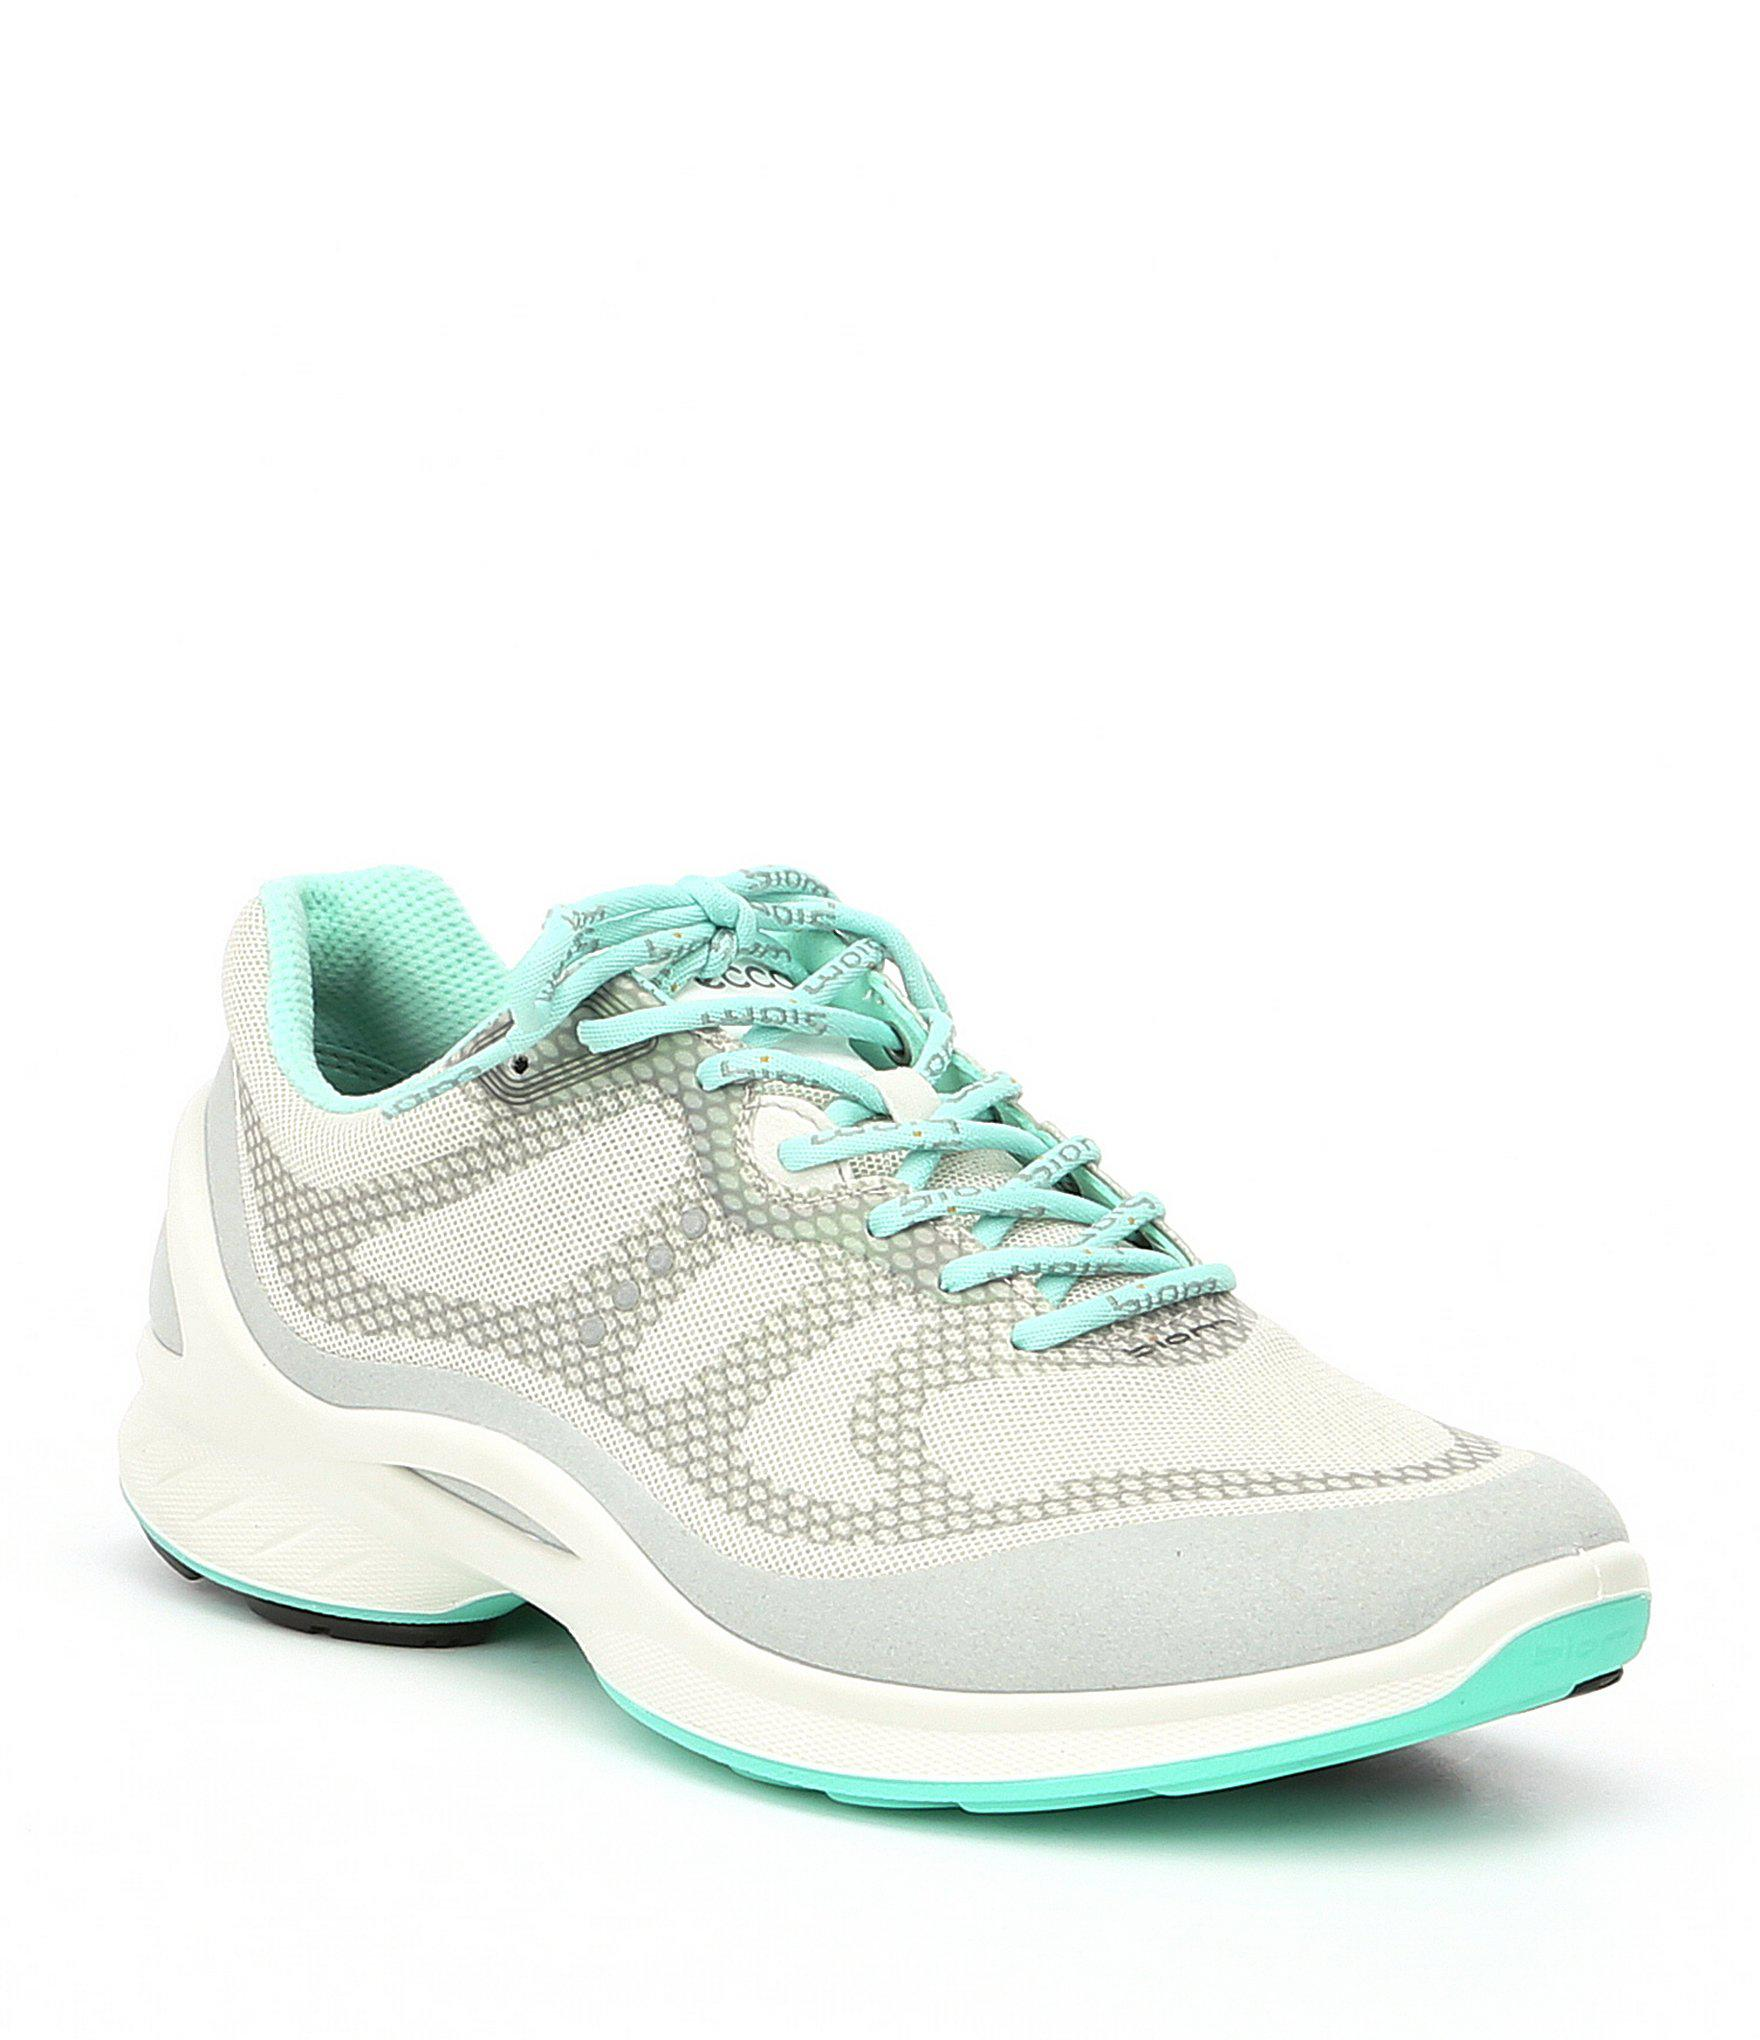 48253d98 Lyst - Ecco Women's Biom Fjuel Tie Sneakers in White